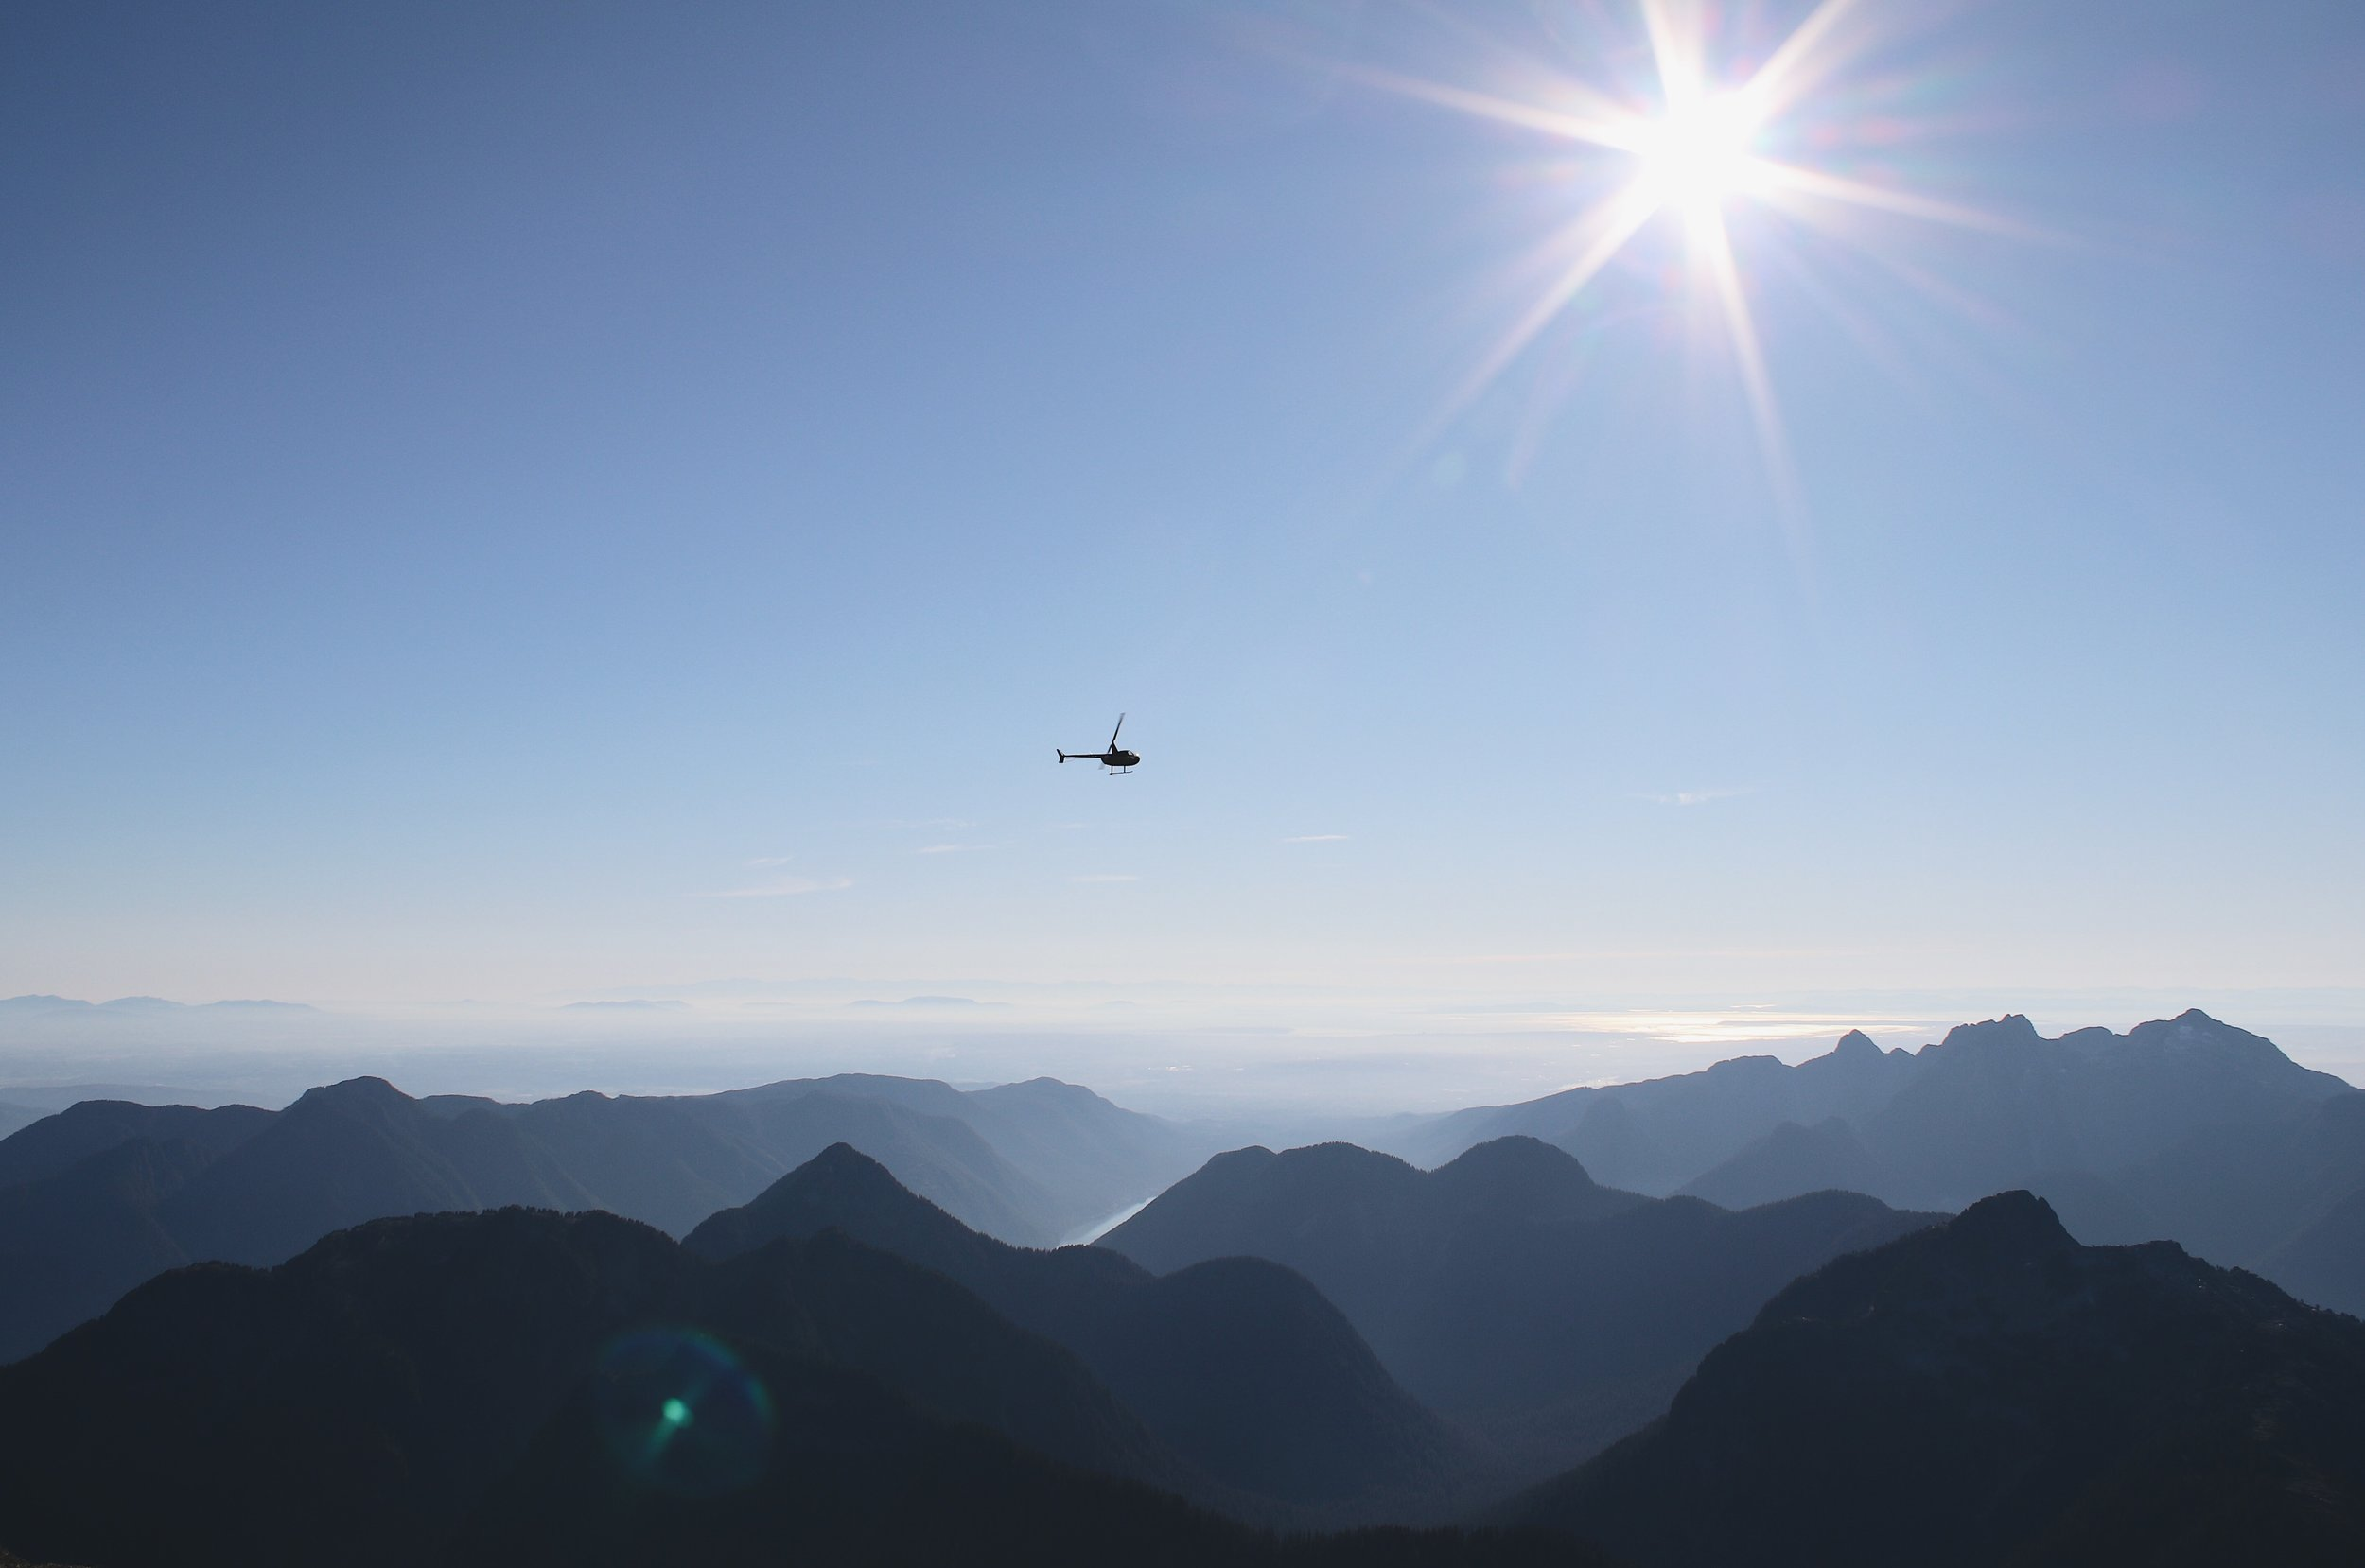 I got dropped off on the top of Mount Robie Reid and watched as my brother flew laps around me in an R44. Nothing but gorgeous peaks and valleys stretched out in every direction.. Hands down one of the coolest moments of my life.